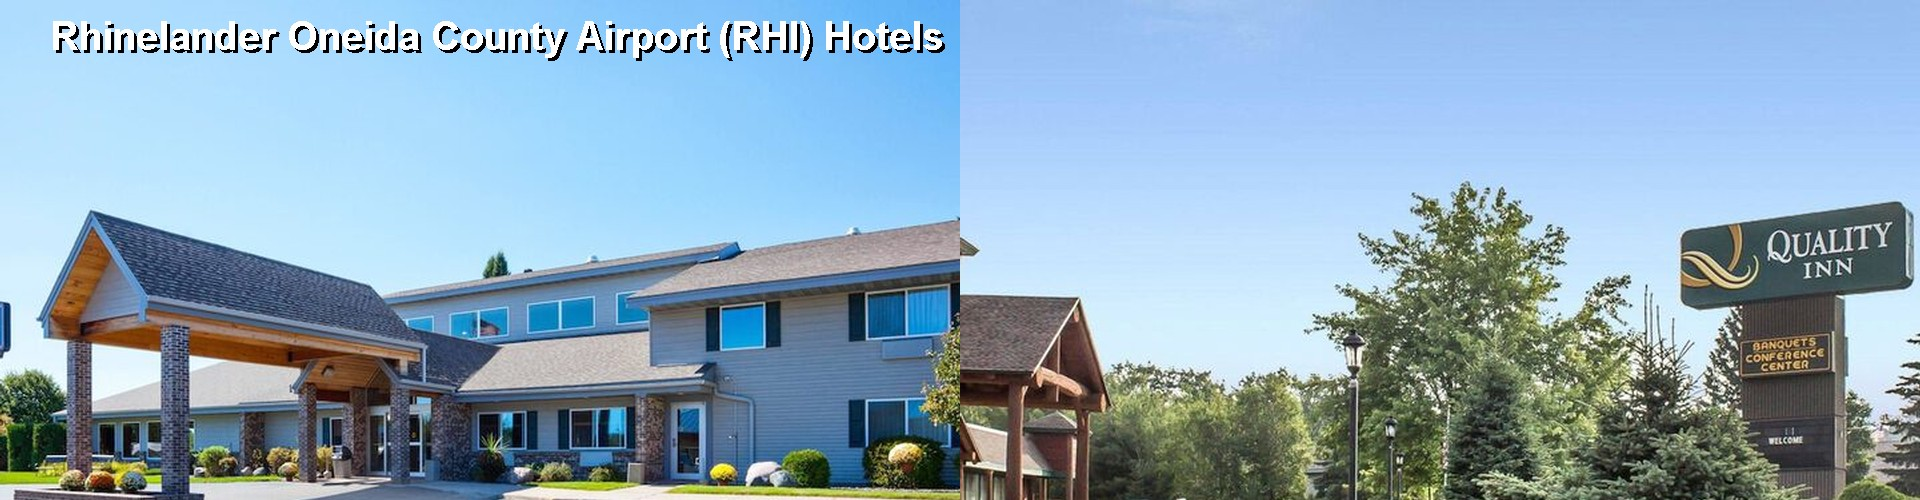 5 Best Hotels Near Rhinelander Oneida County Airport Rhi